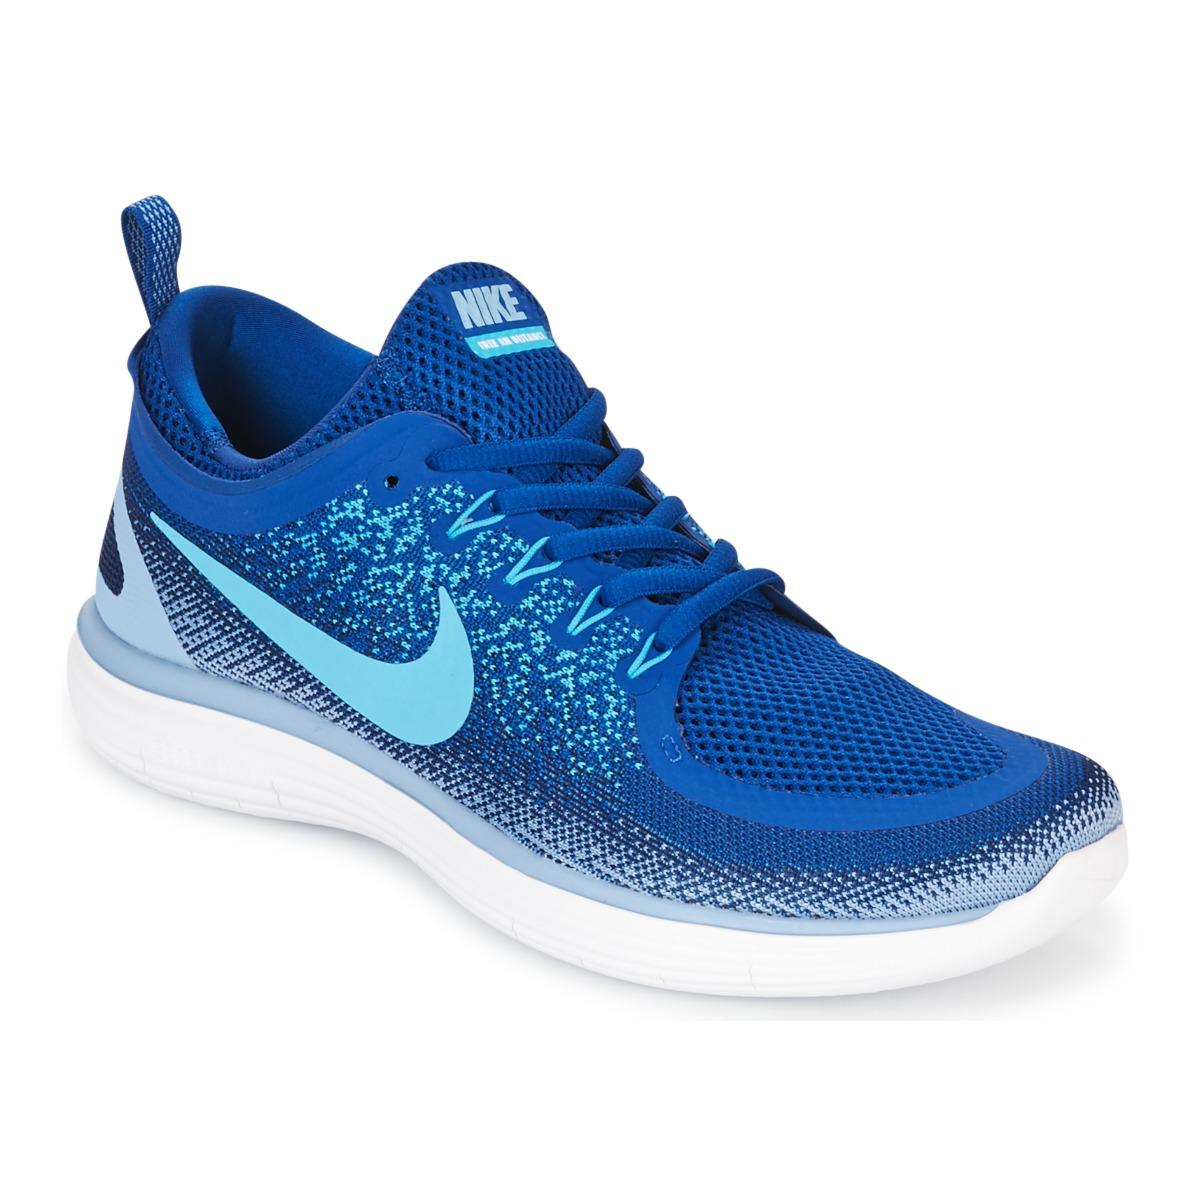 ed03ea266e2 Nike Free Run Distance 2 Men s Running Trainers In Blue in Blue for ...